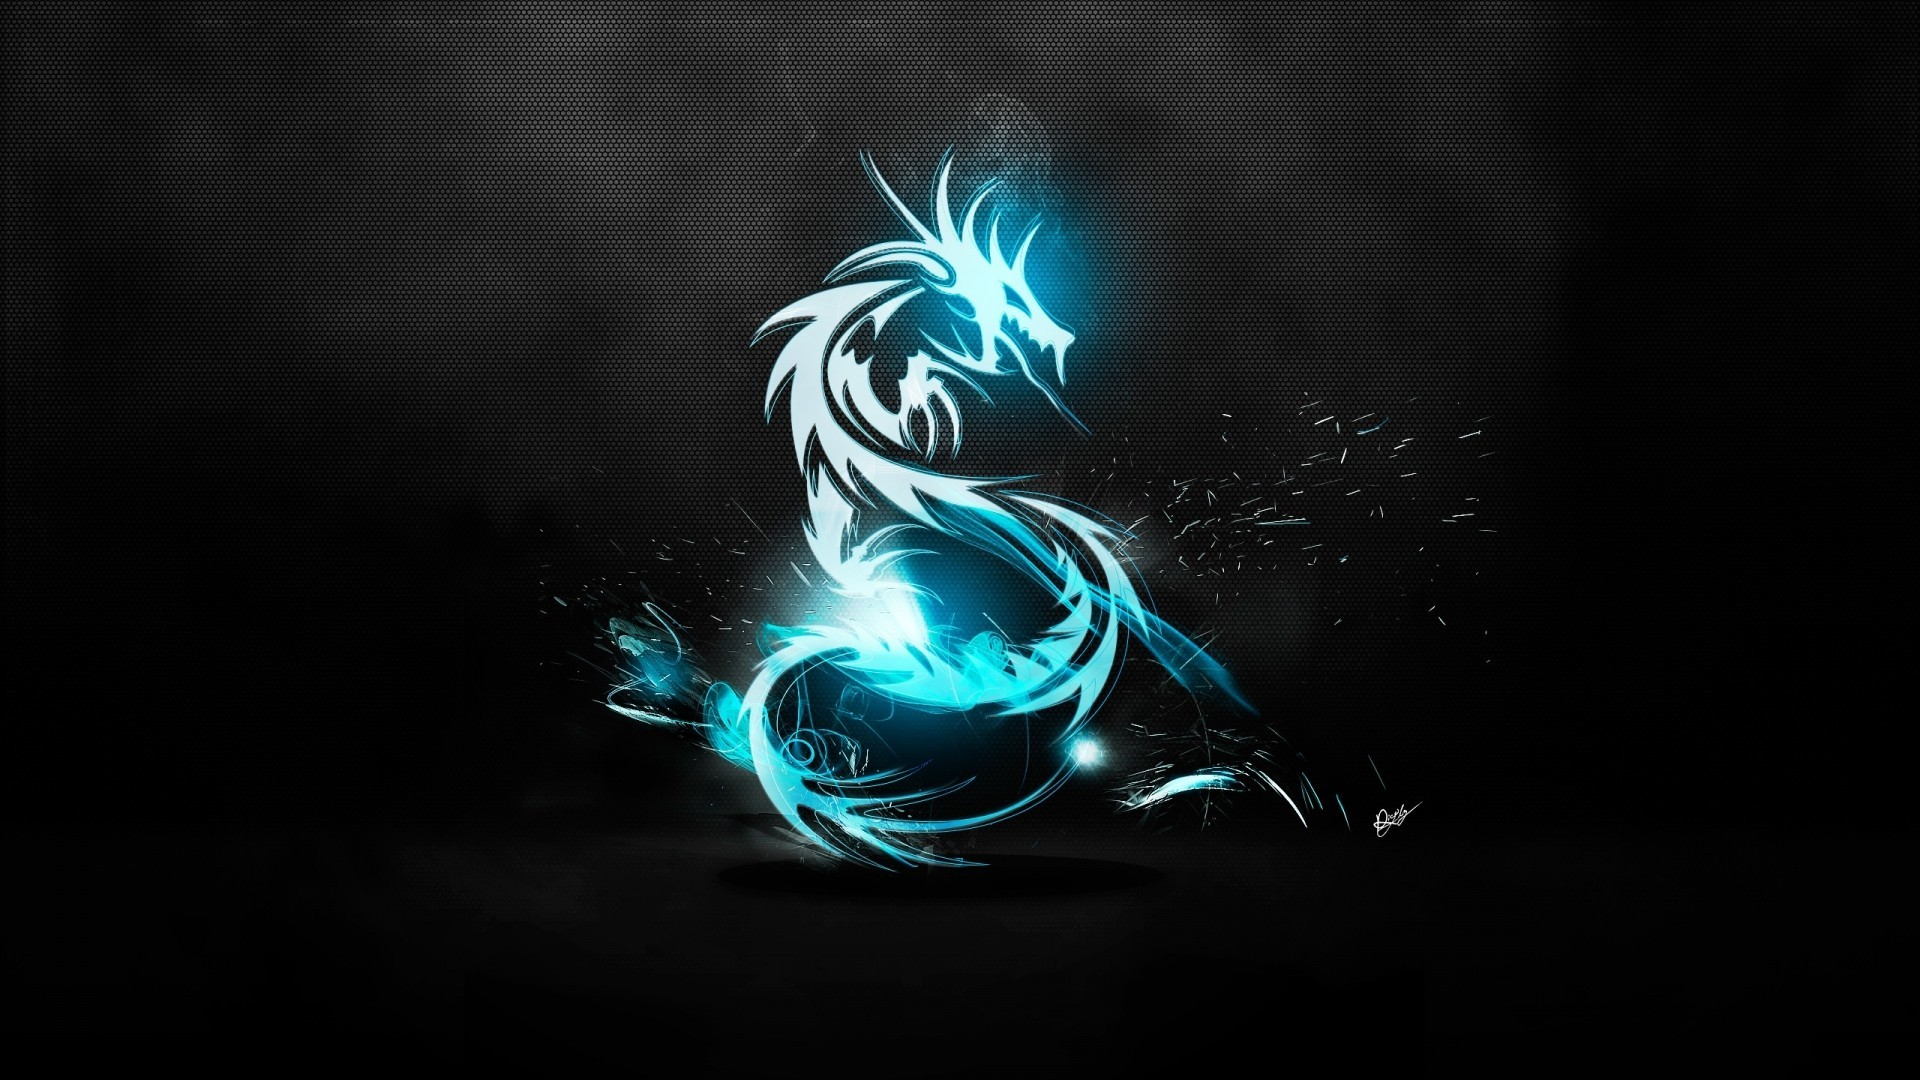 Illuminated Dragon, Cool Wallpapers 136.65 Kb